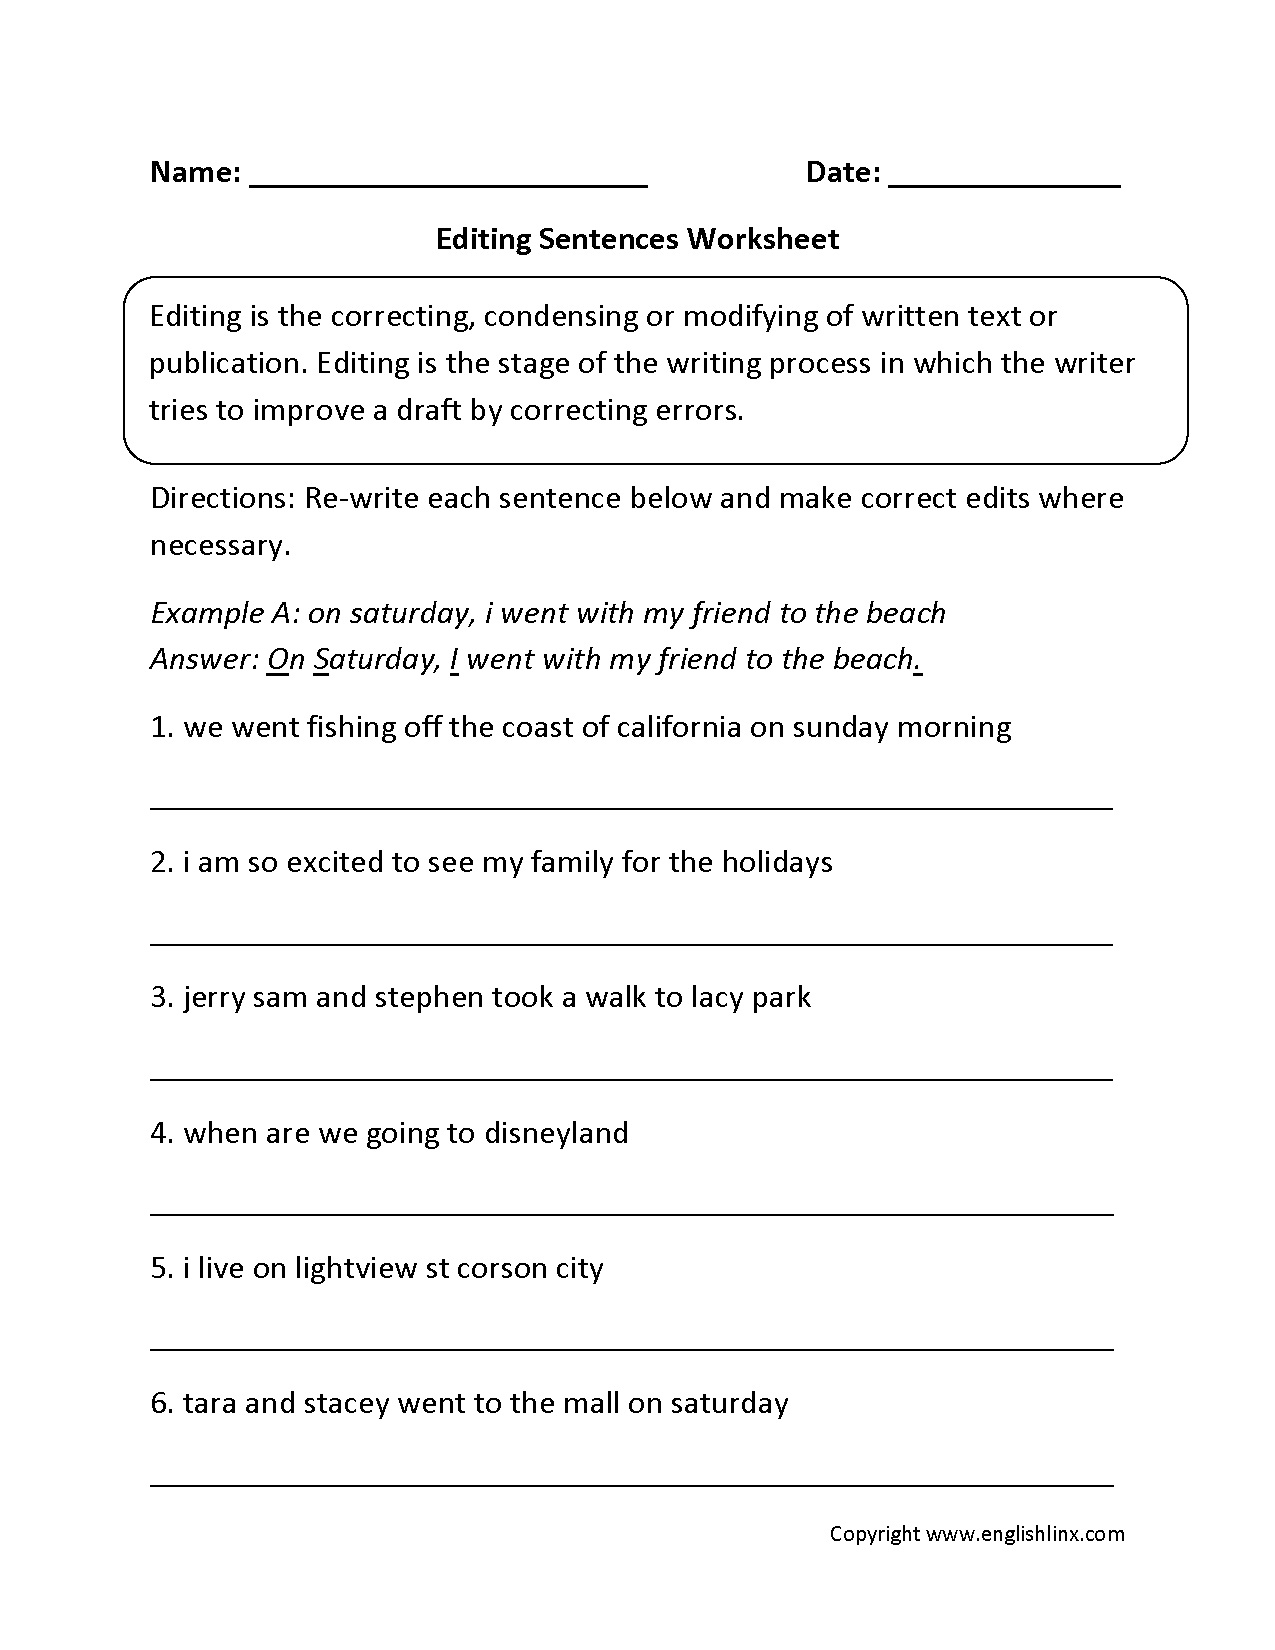 Grammar Editing Worksheets Grade 6